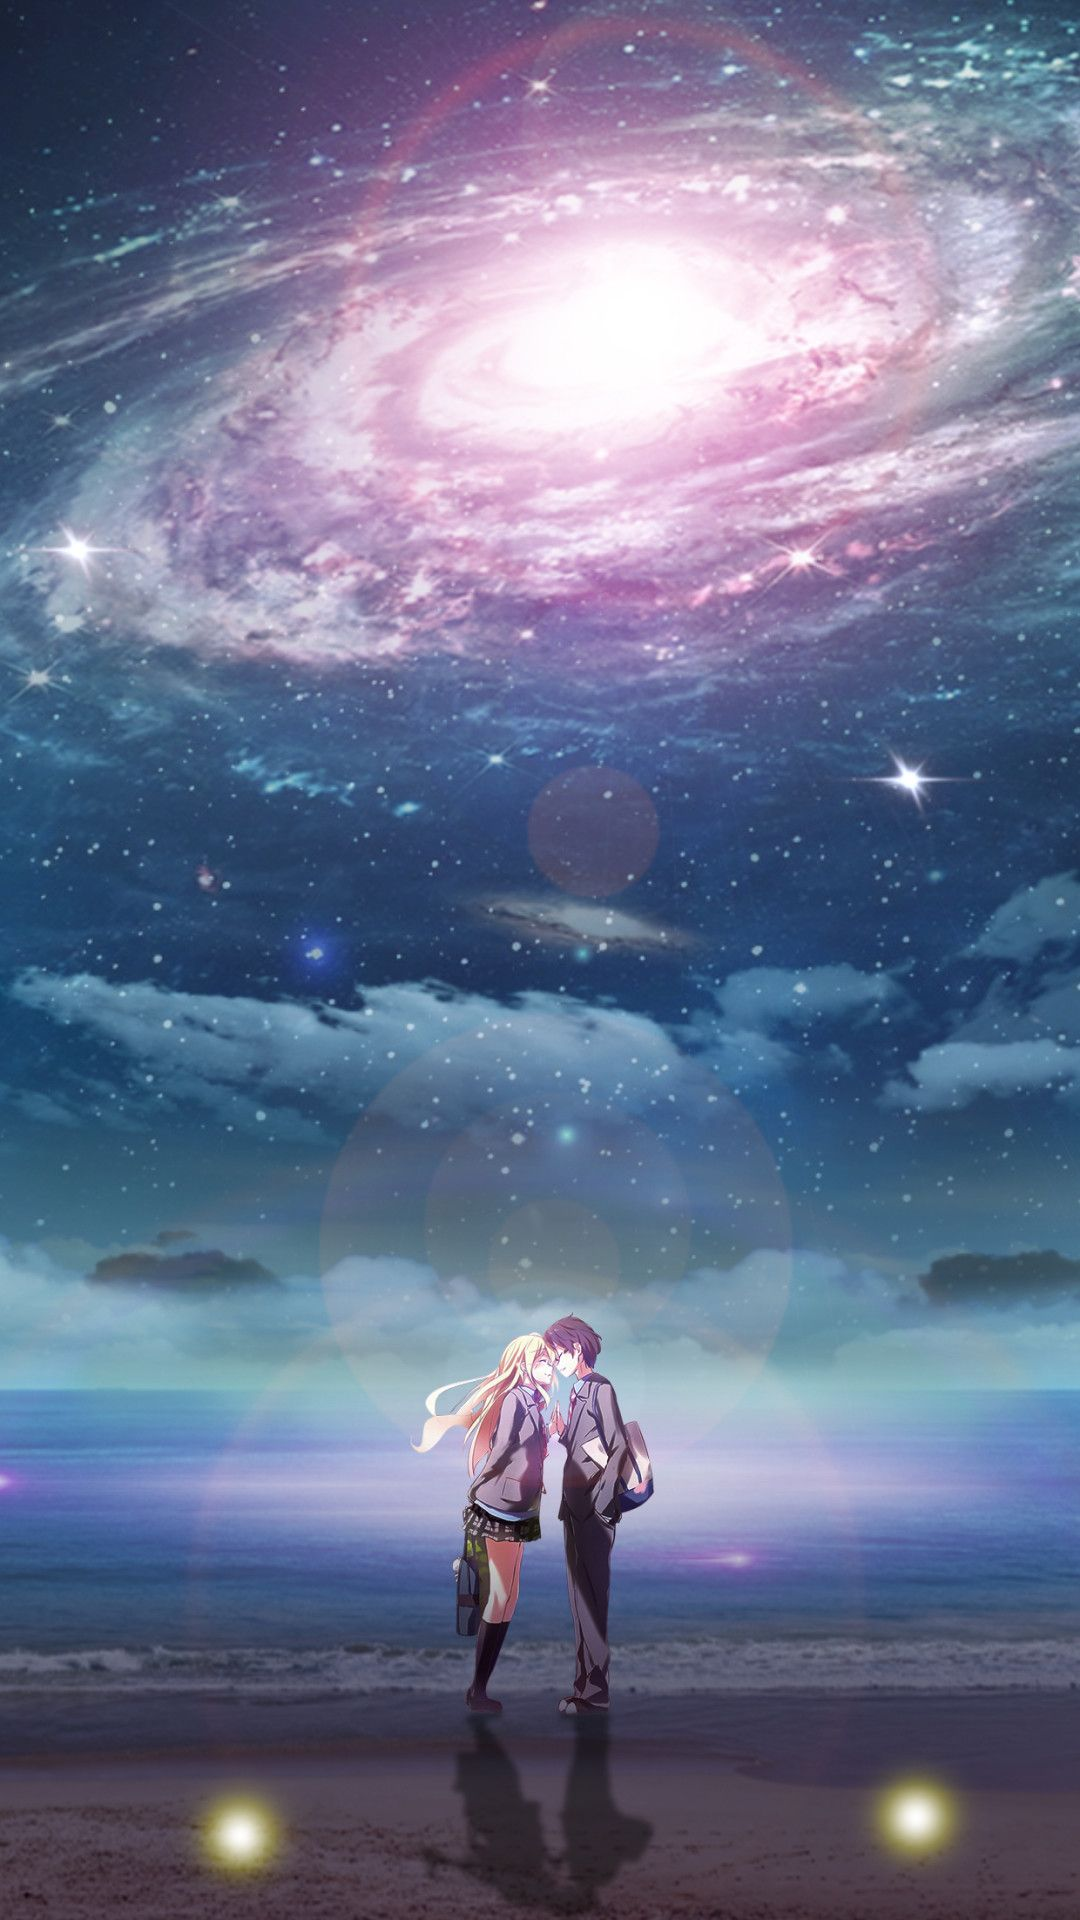 Your Lie In April Anime Hd Wallpapers Wallpaper Cave